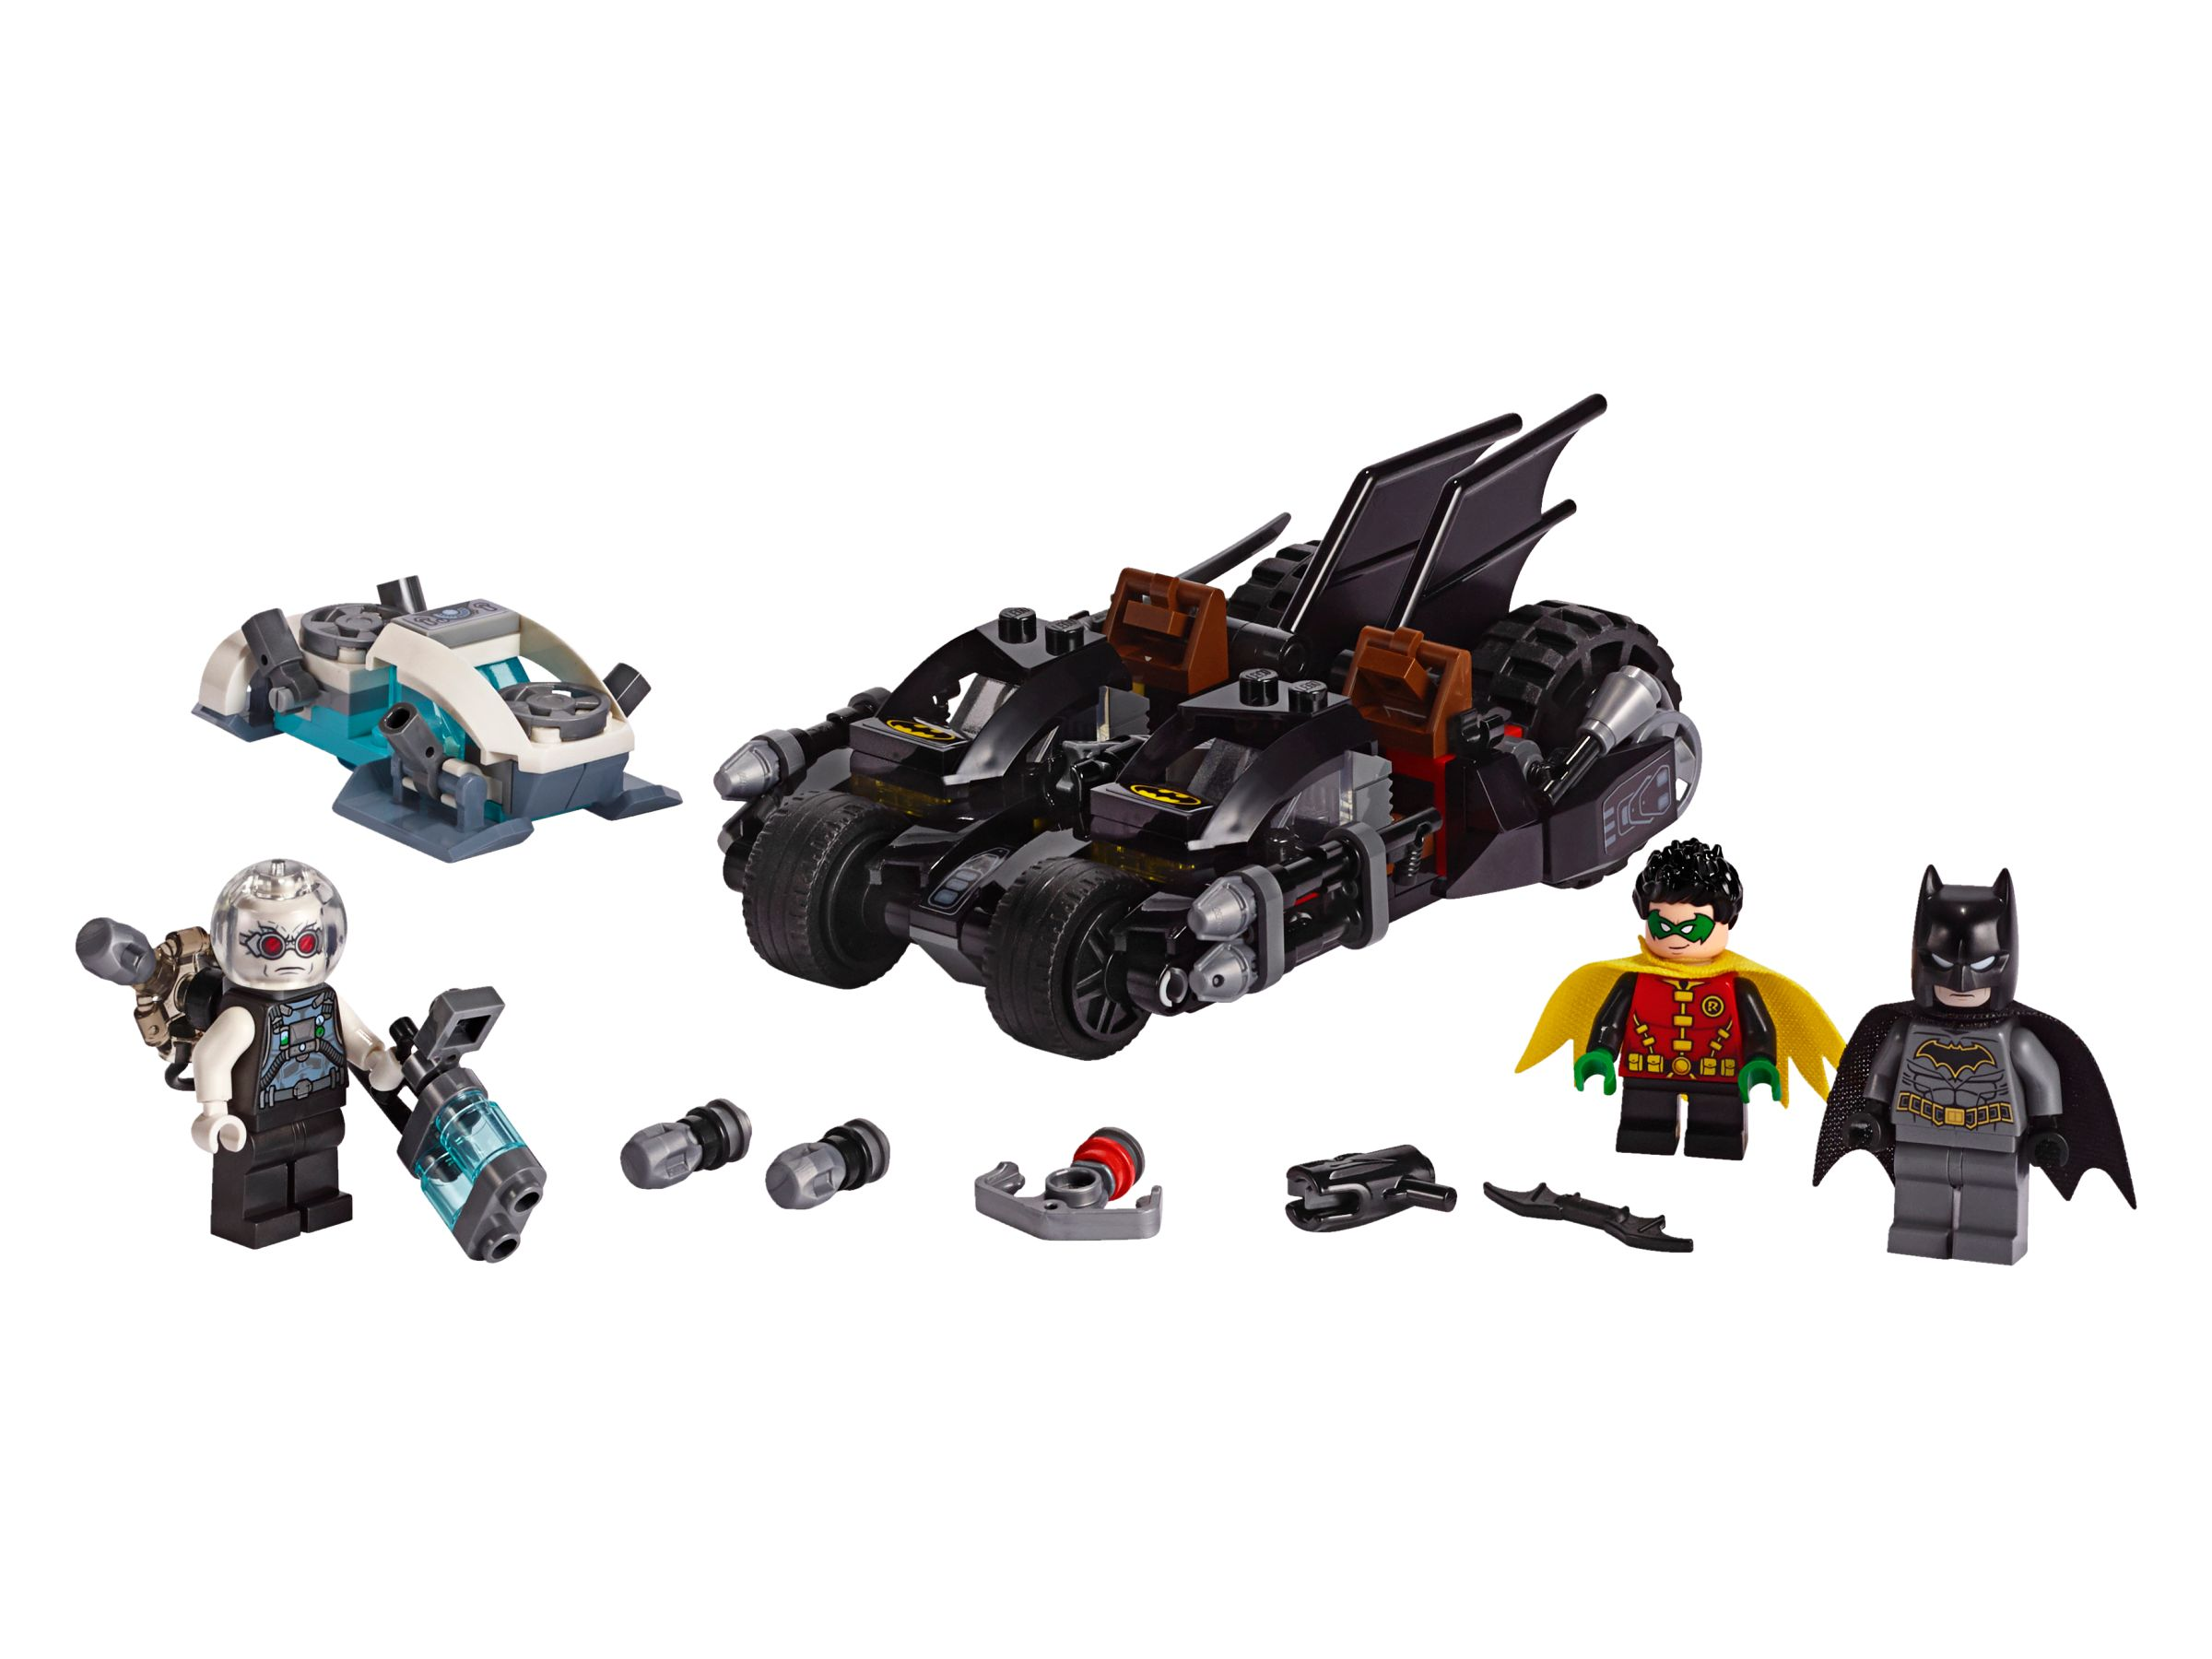 LEGO Super Heroes 76118 Batcycle-Duell mit Mr. Freeze™ LEGO_76118.jpg